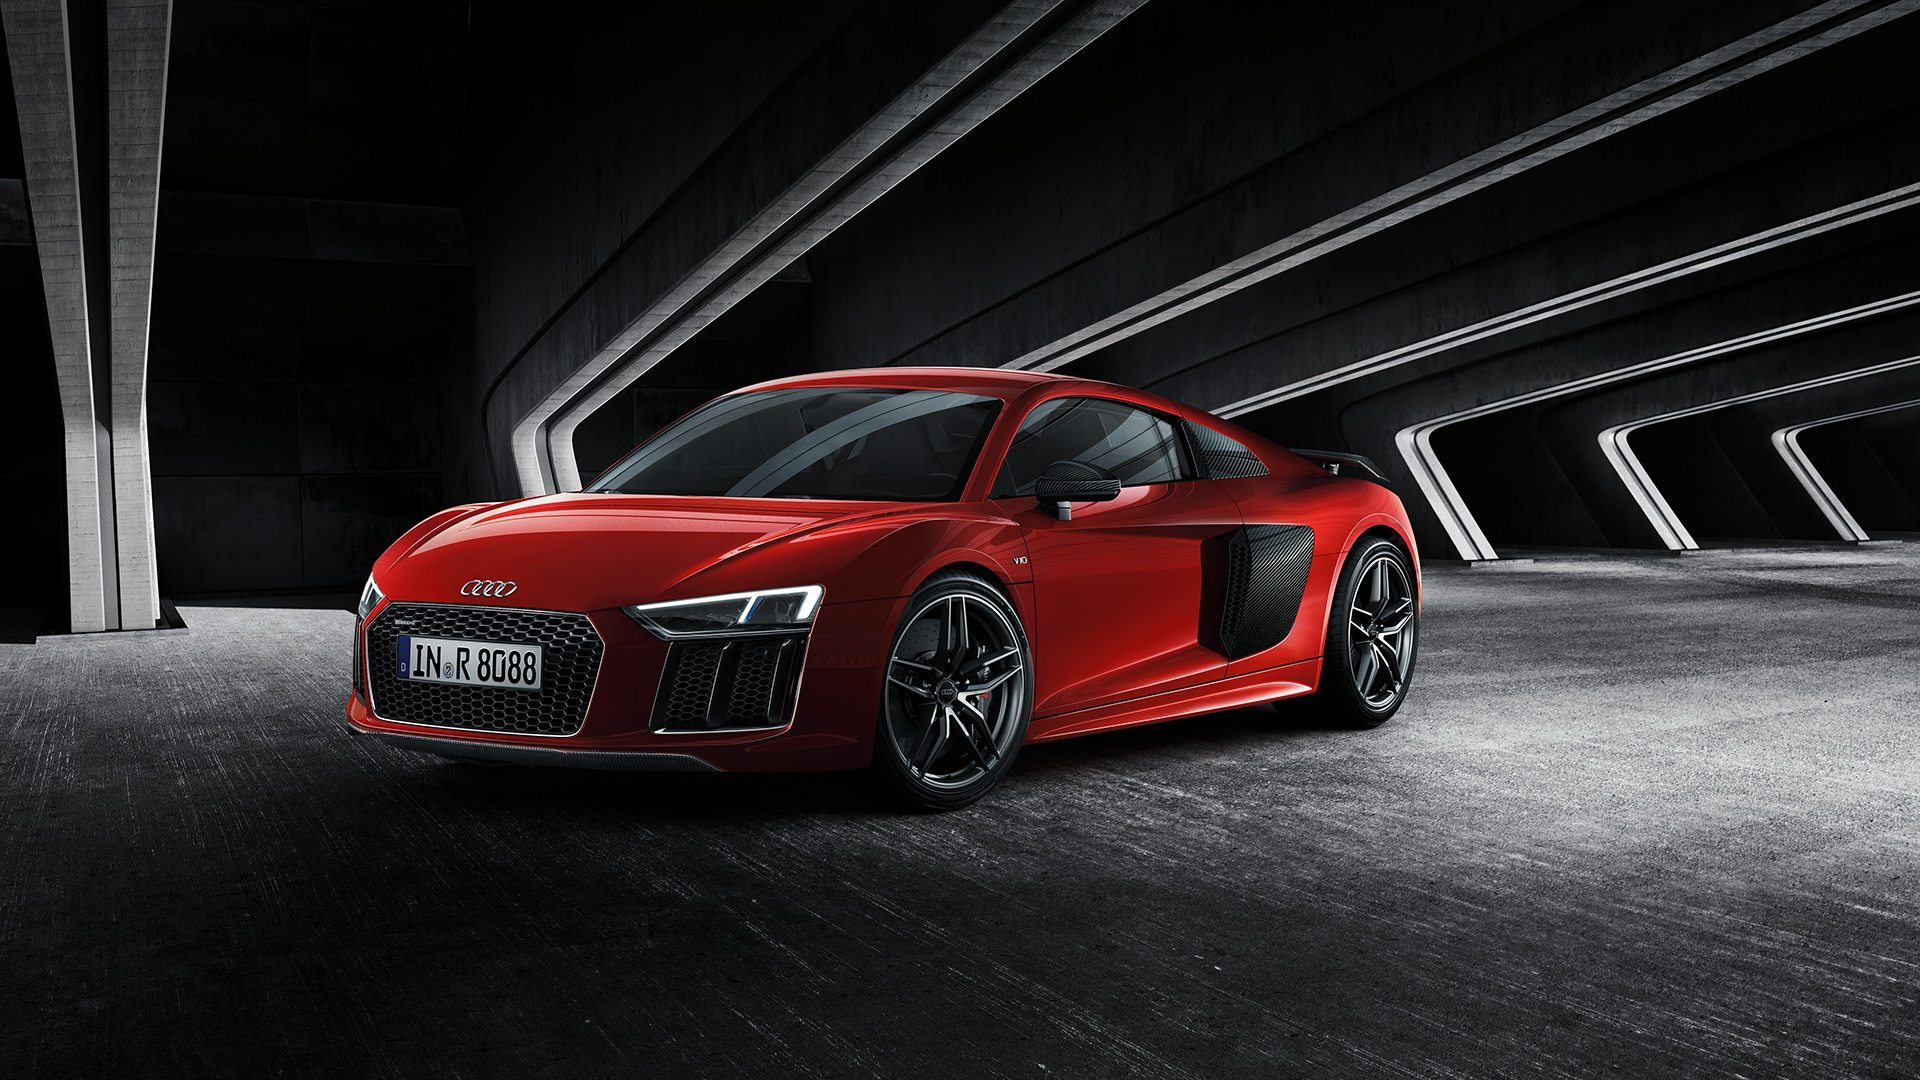 2018 Audi R8 5 2 V10 Plus Price In Uae Specs Amp Review In